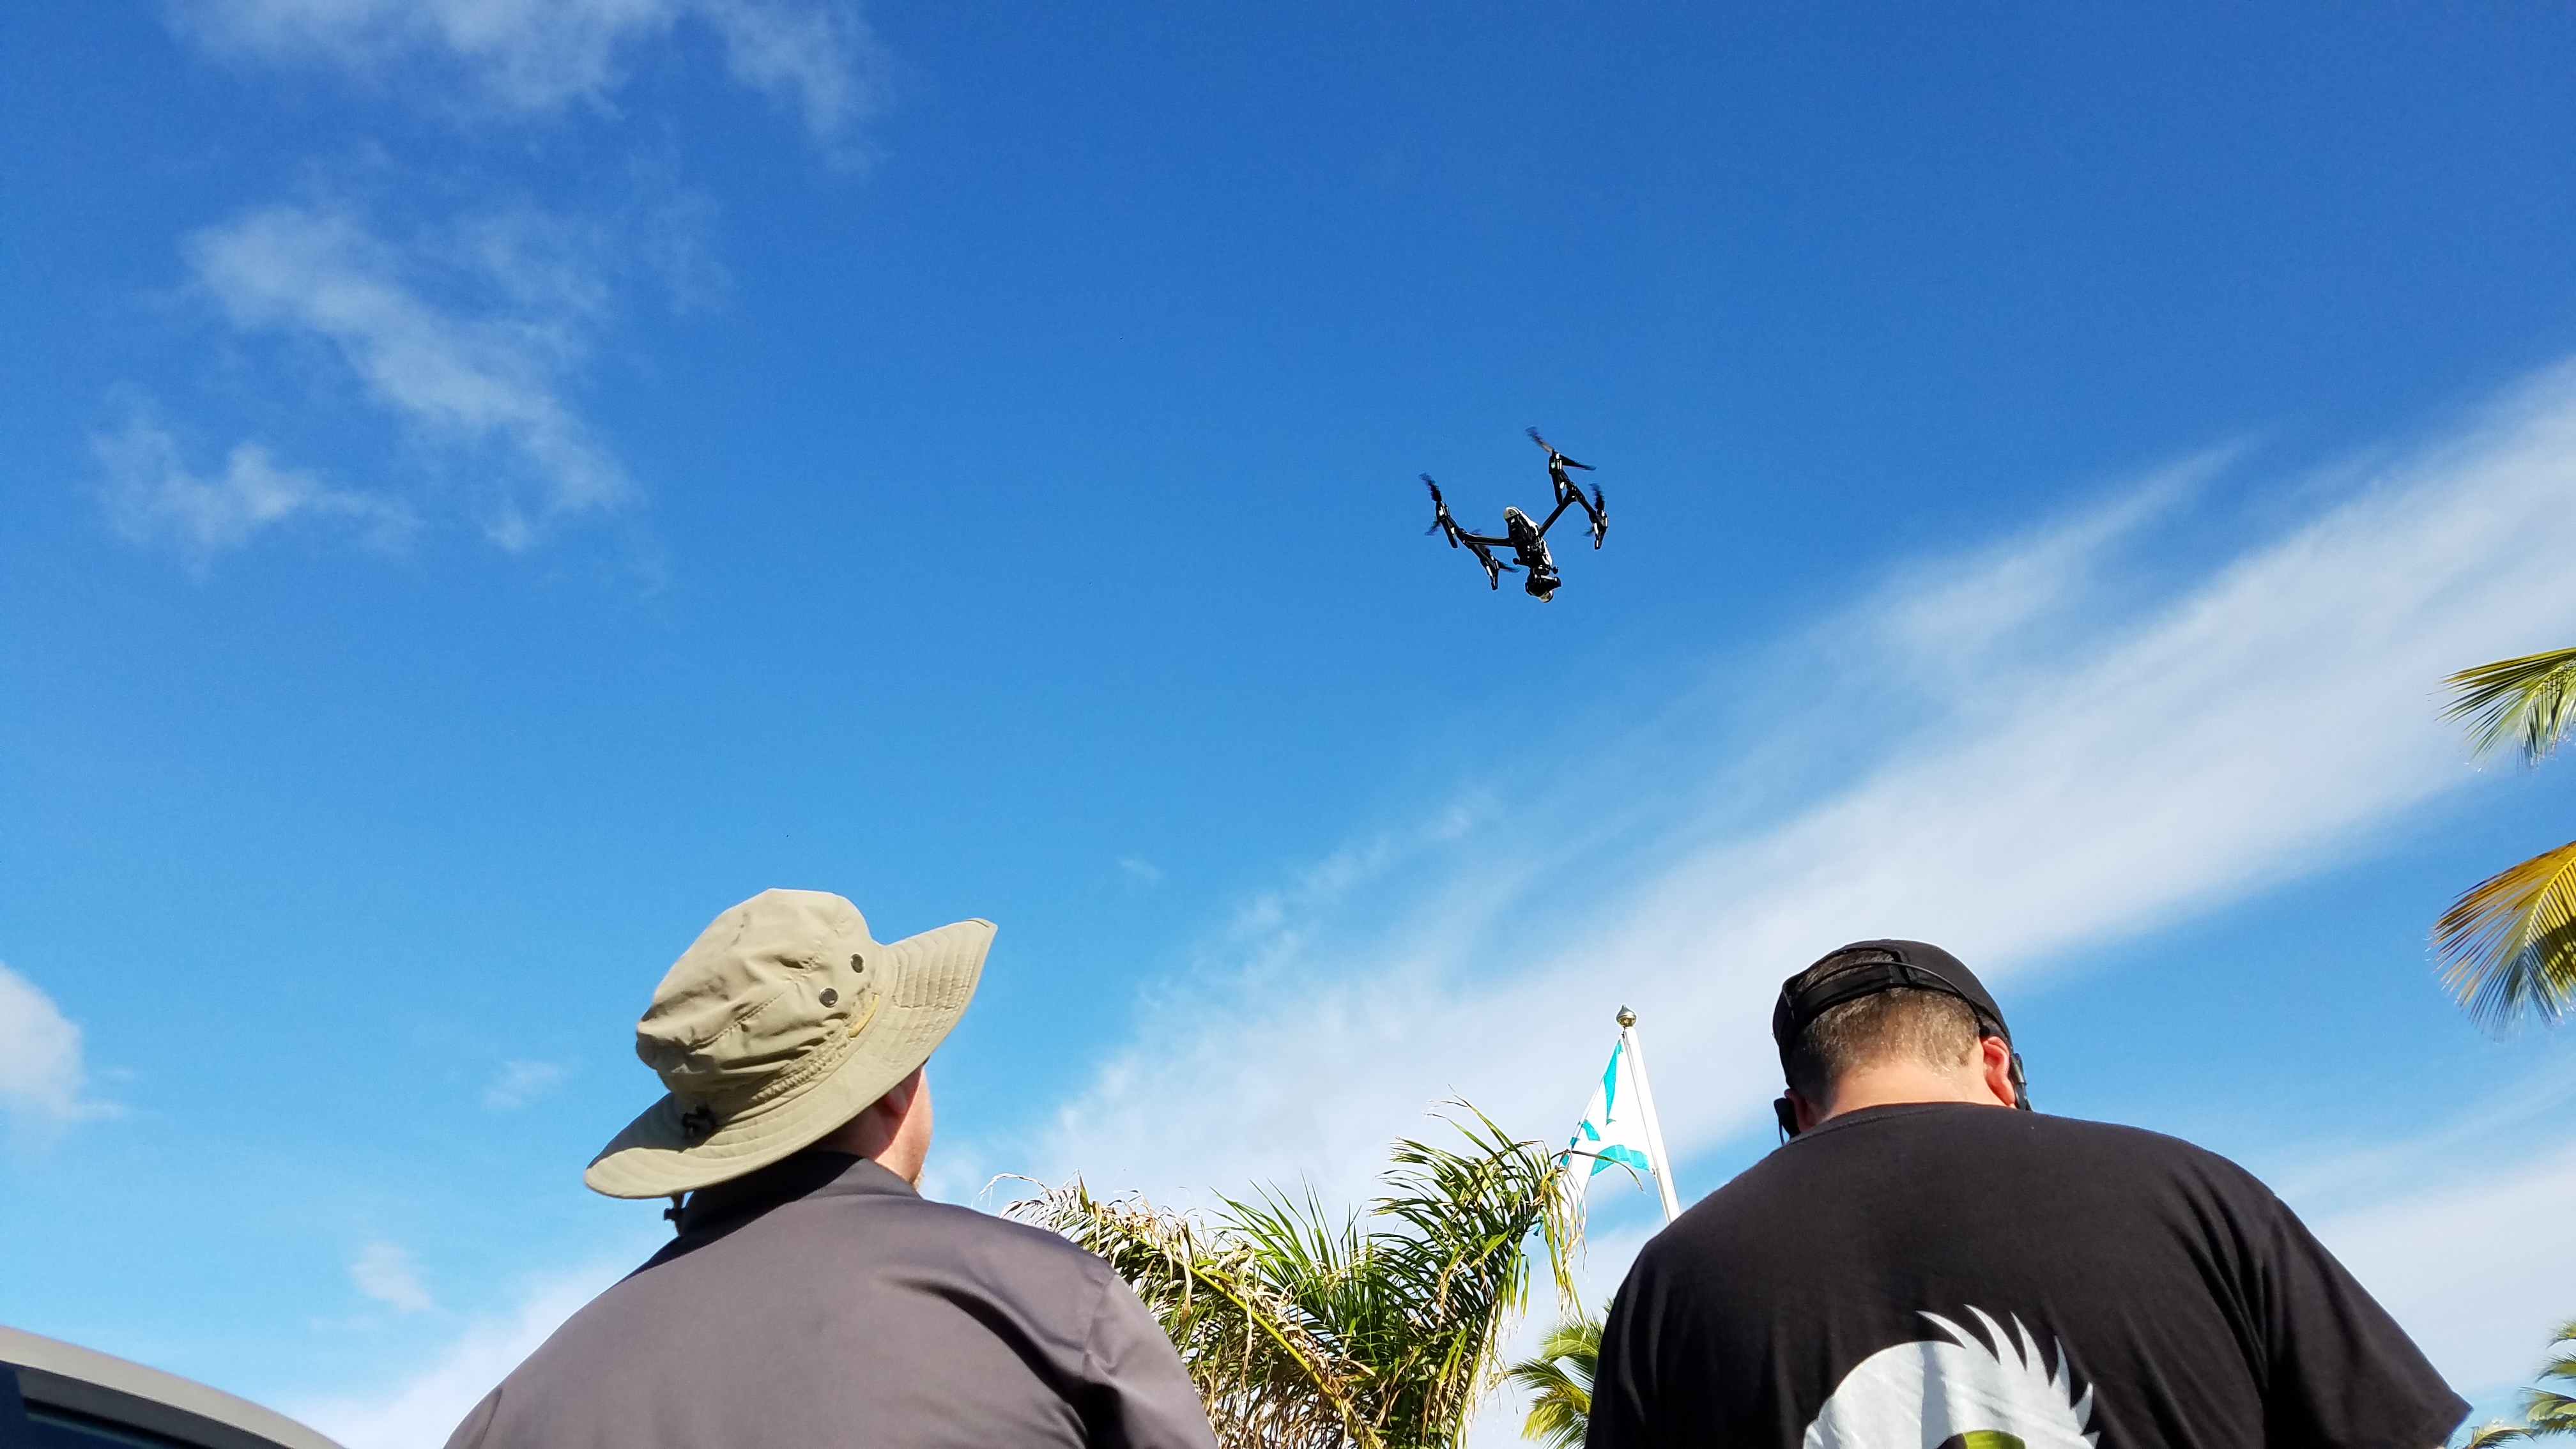 Drones are safe in trained hands